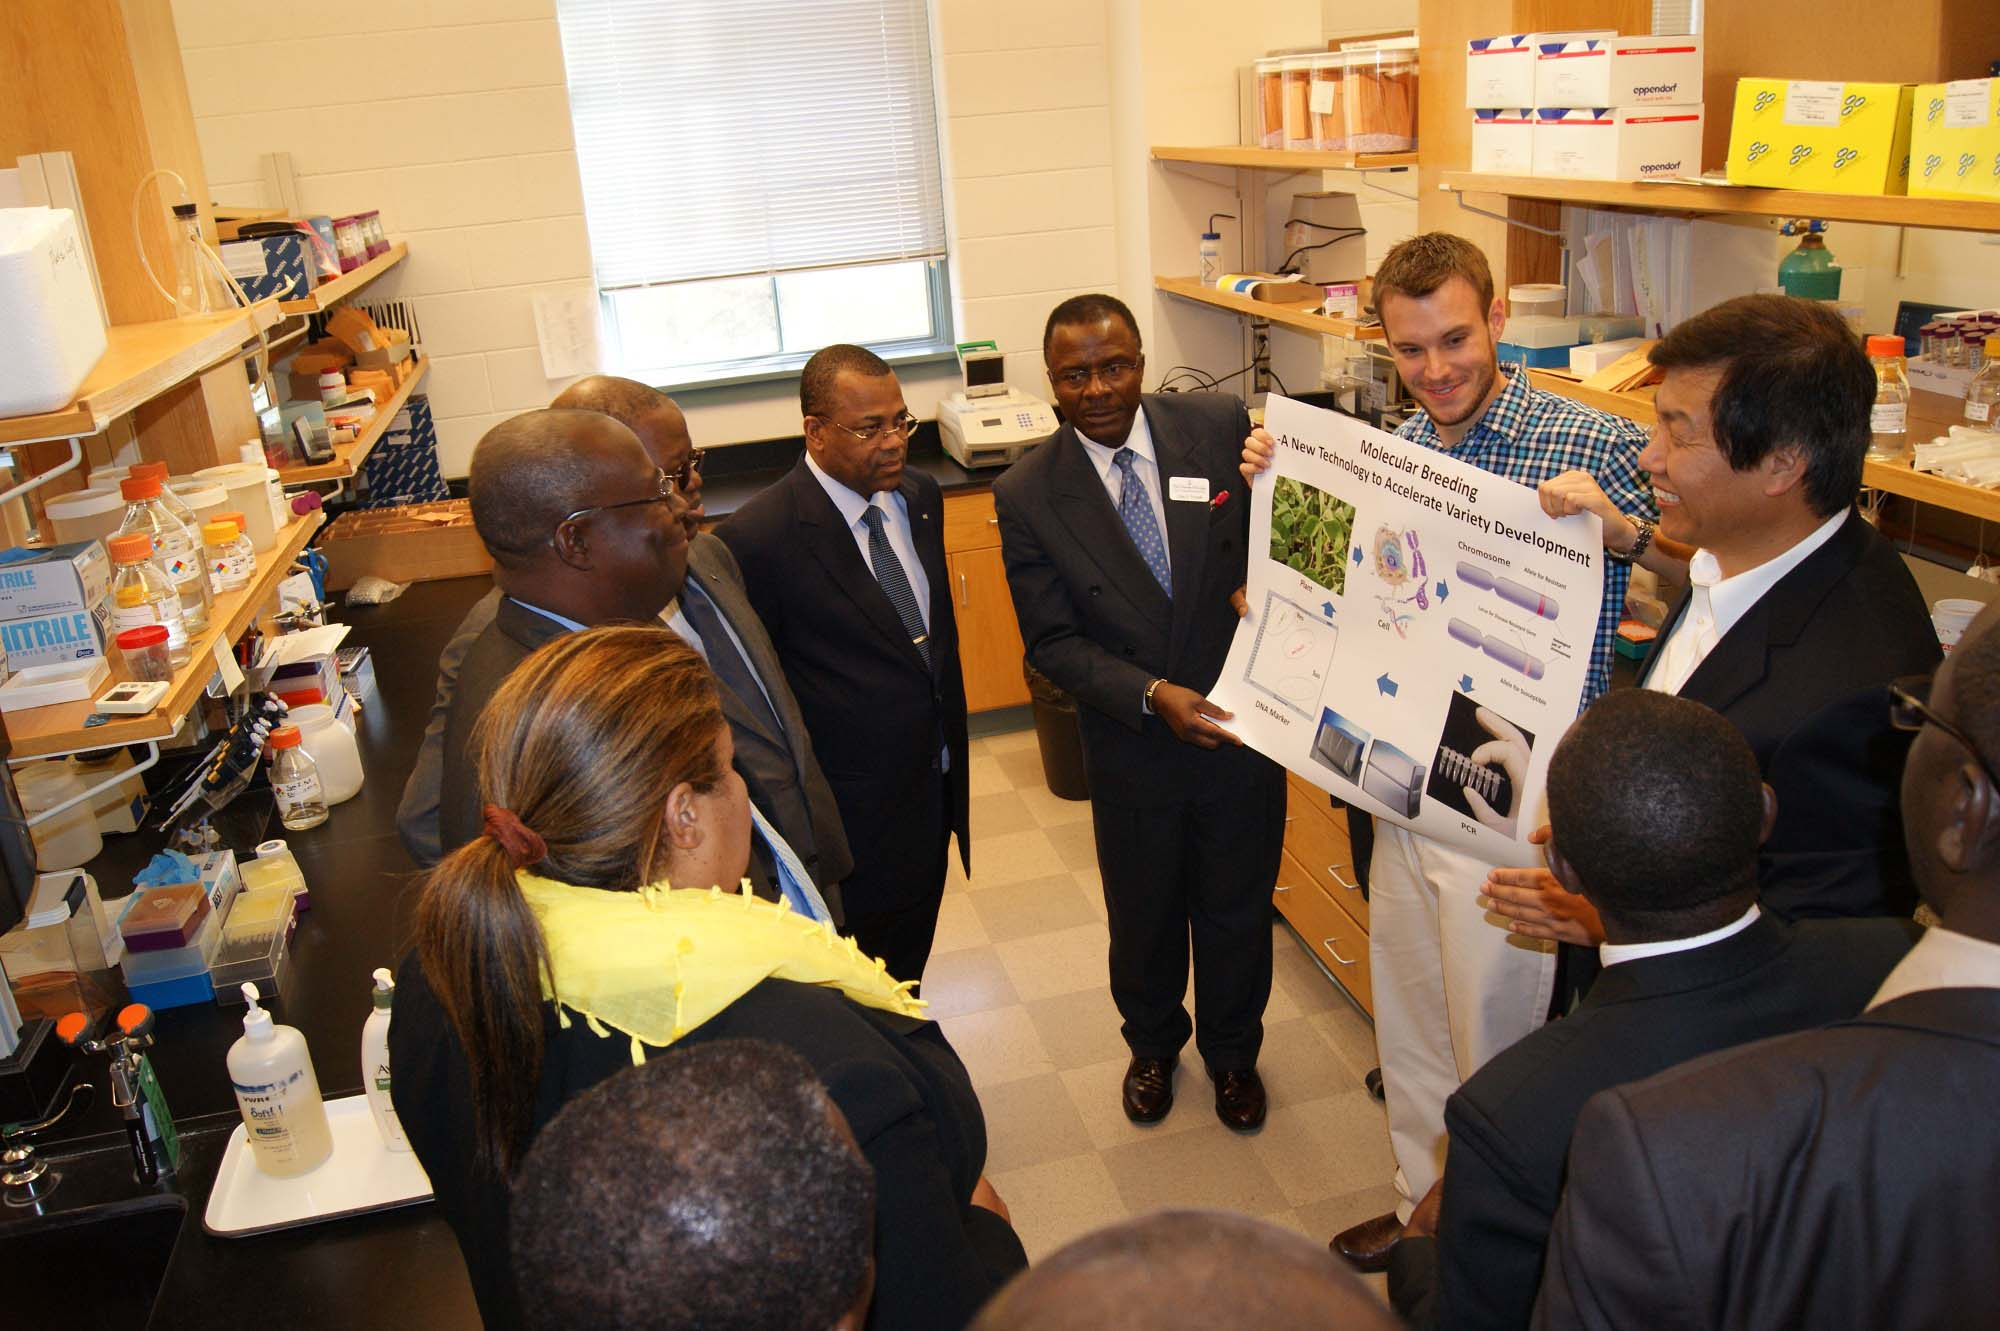 A delegation of representatives from the Gabonese Ministry of Agriculture, Livestock Fisheries and Rural Development toured some of the highlights of Georgia's ag industry in November.